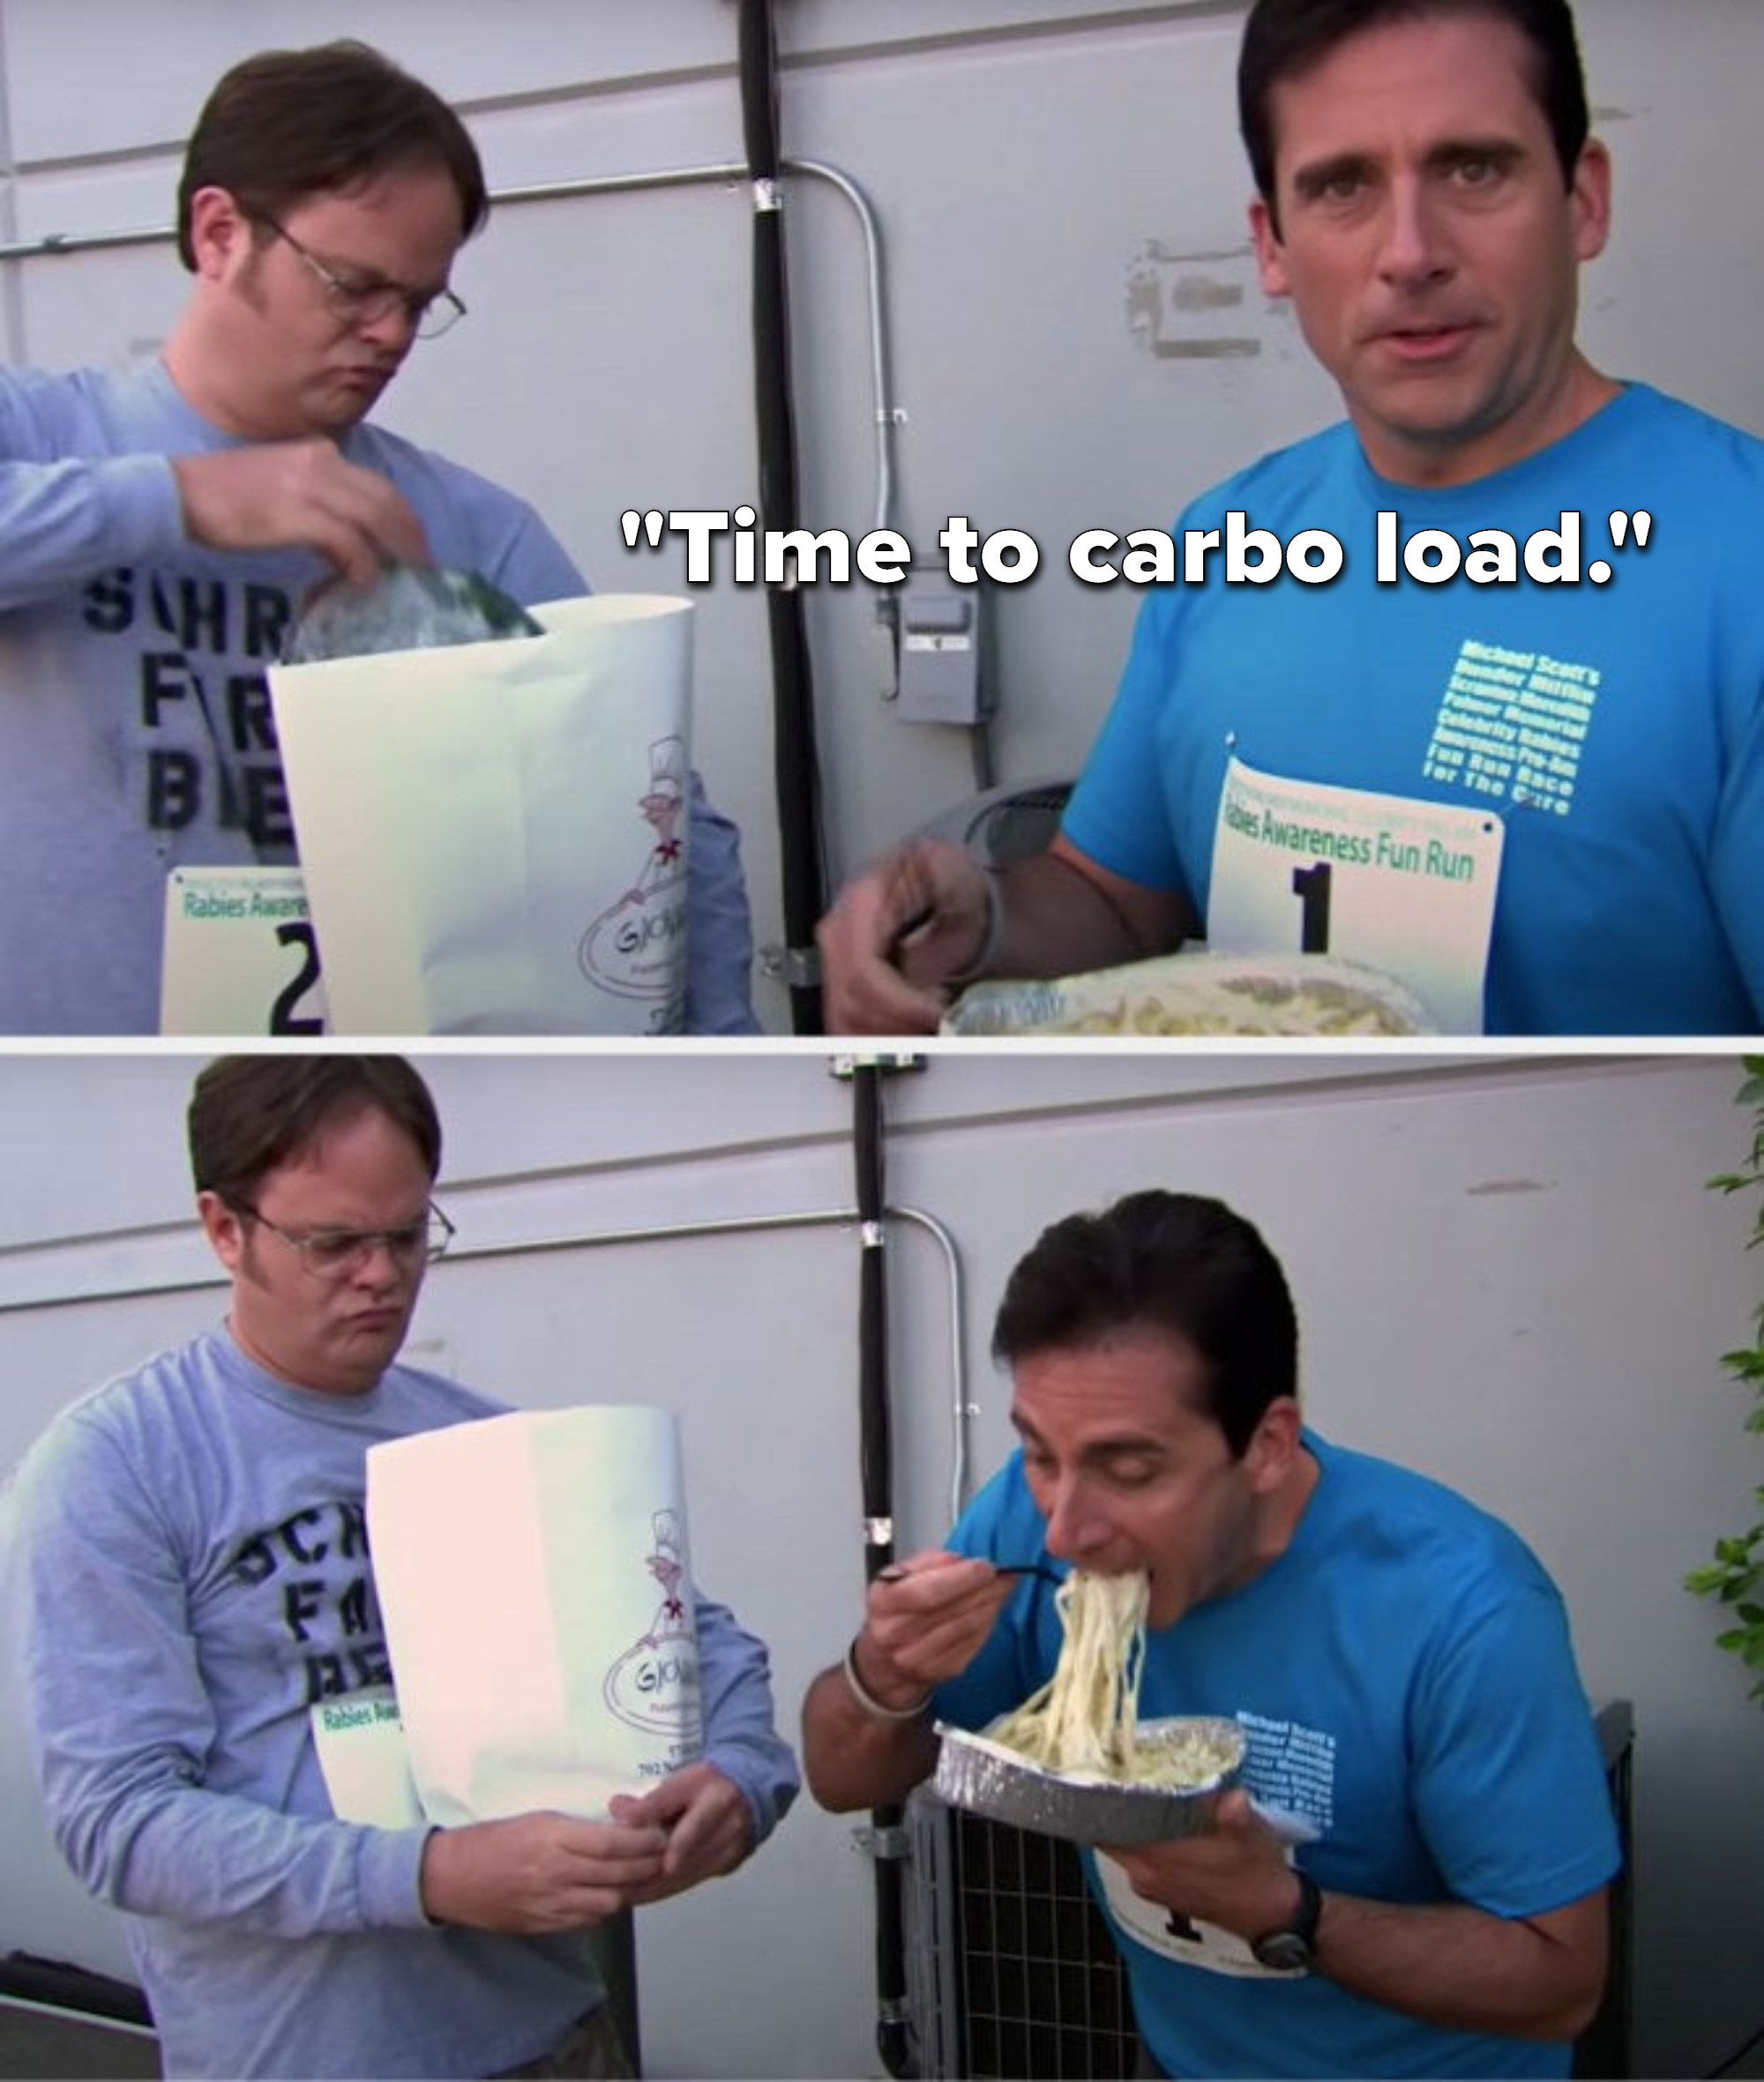 Michael says, Time to carbo load and takes a huge bite of his full fettuccine alfredo meal